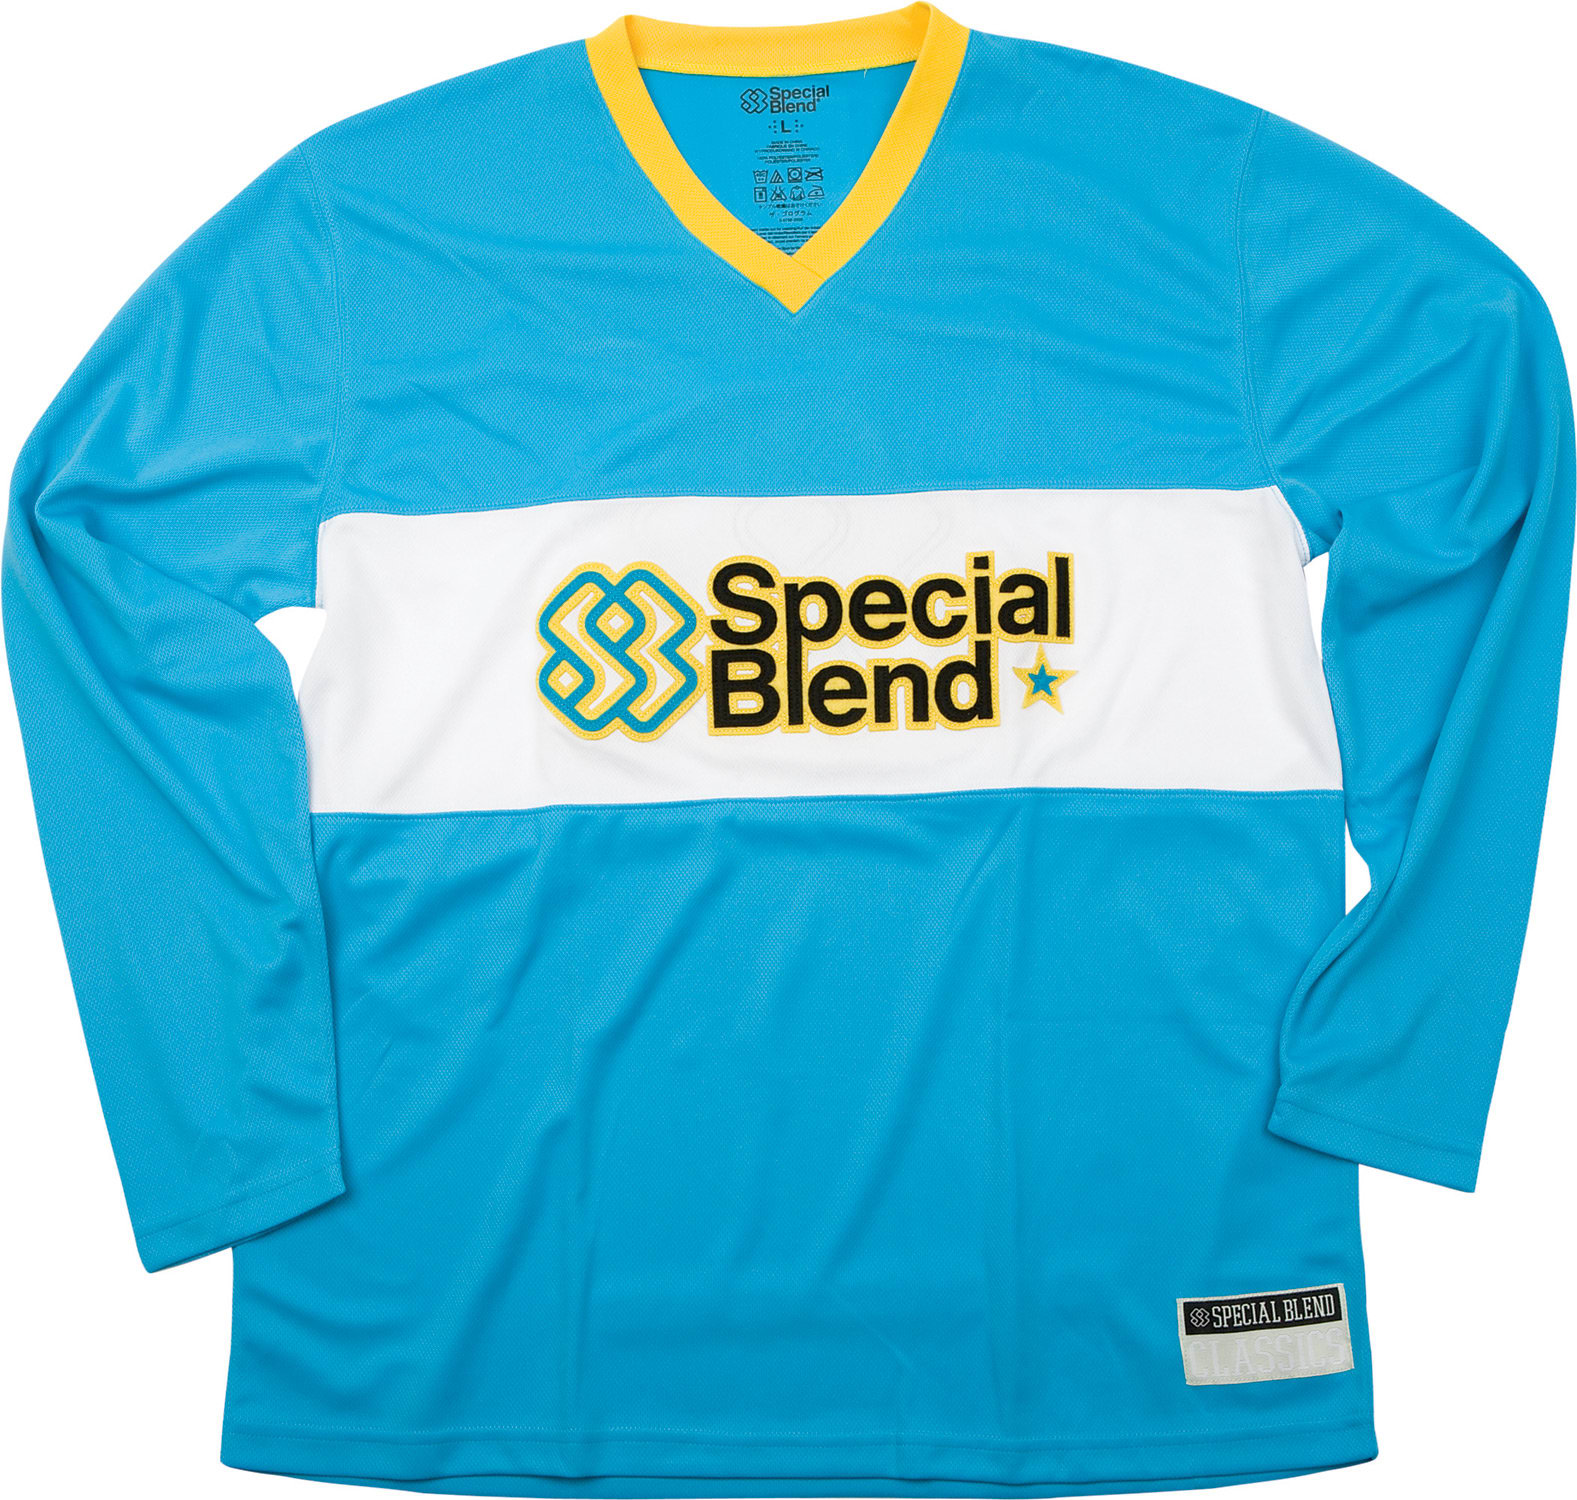 Shop for Special Blend Long Sleeve Jersey Baselayer Top South Beach - Men's